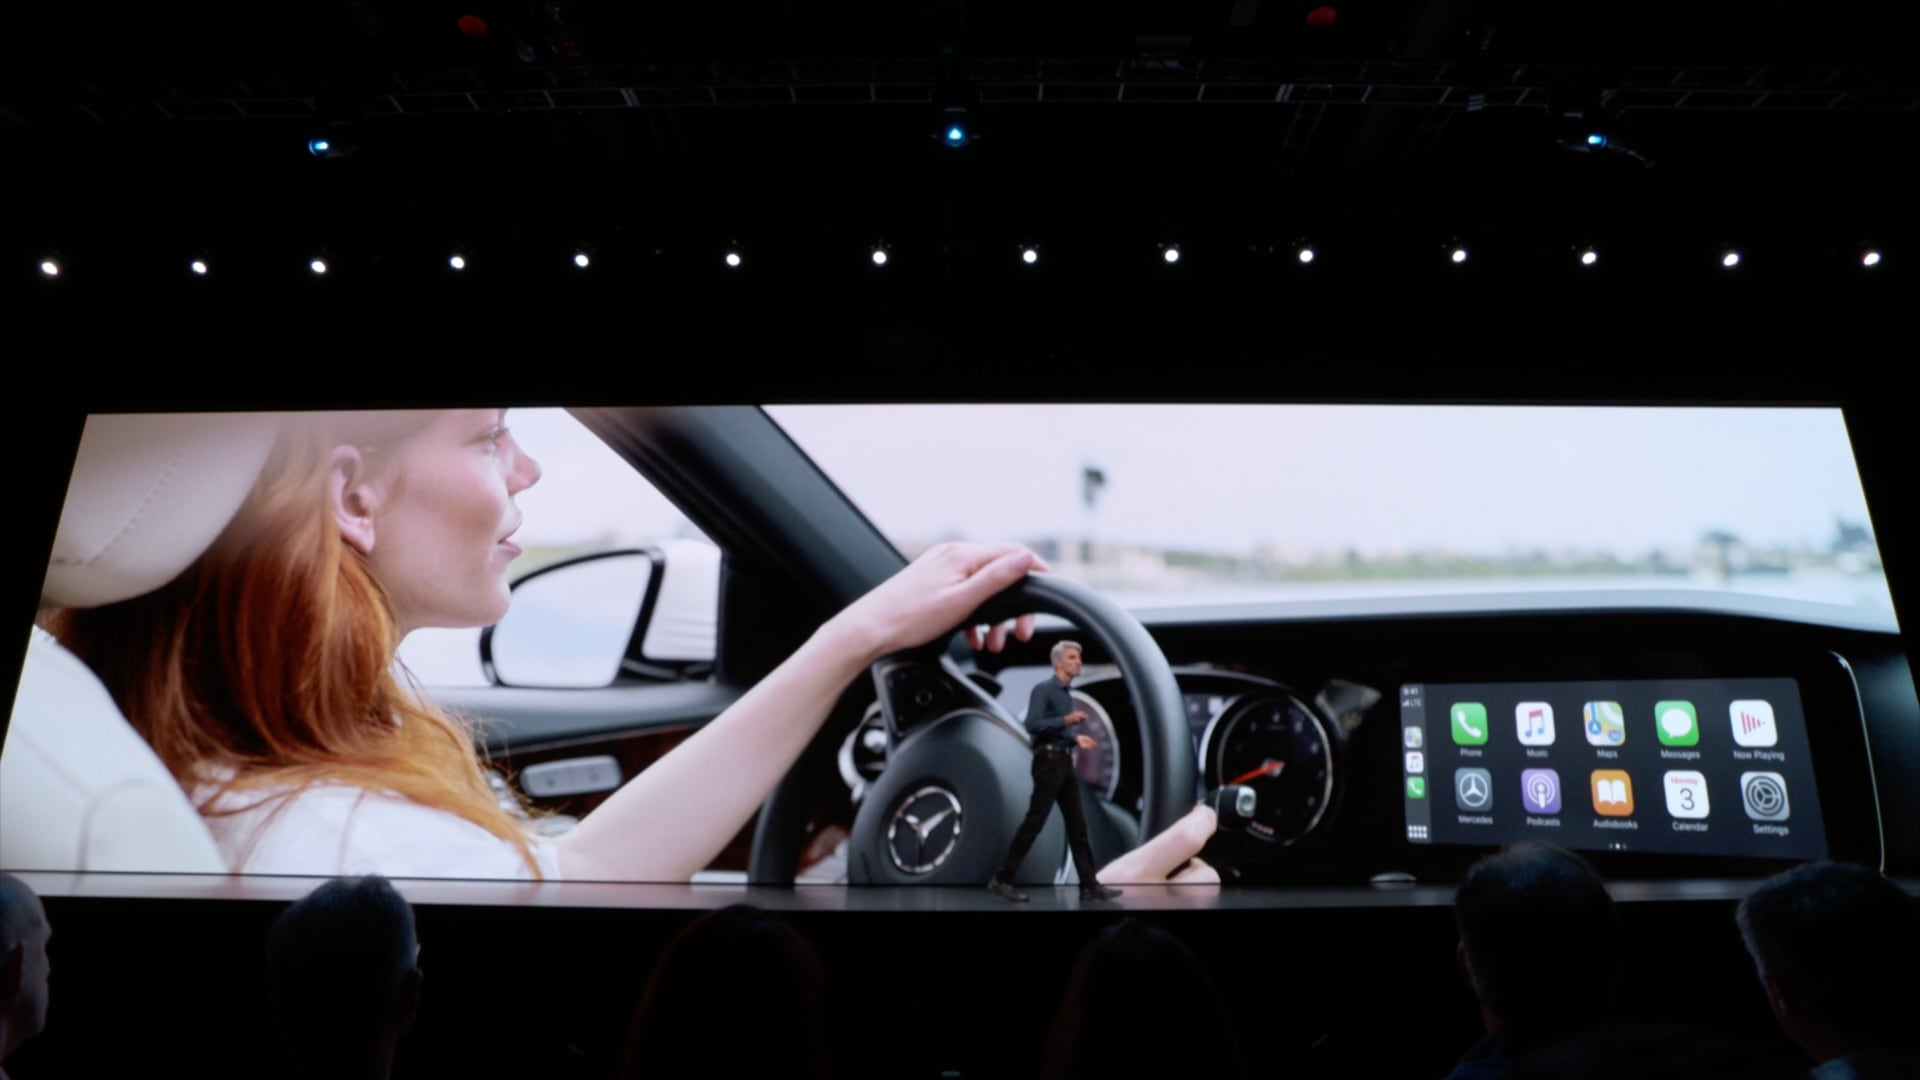 iOS 13's CarPlay features include Light theme, Dashboard, album art